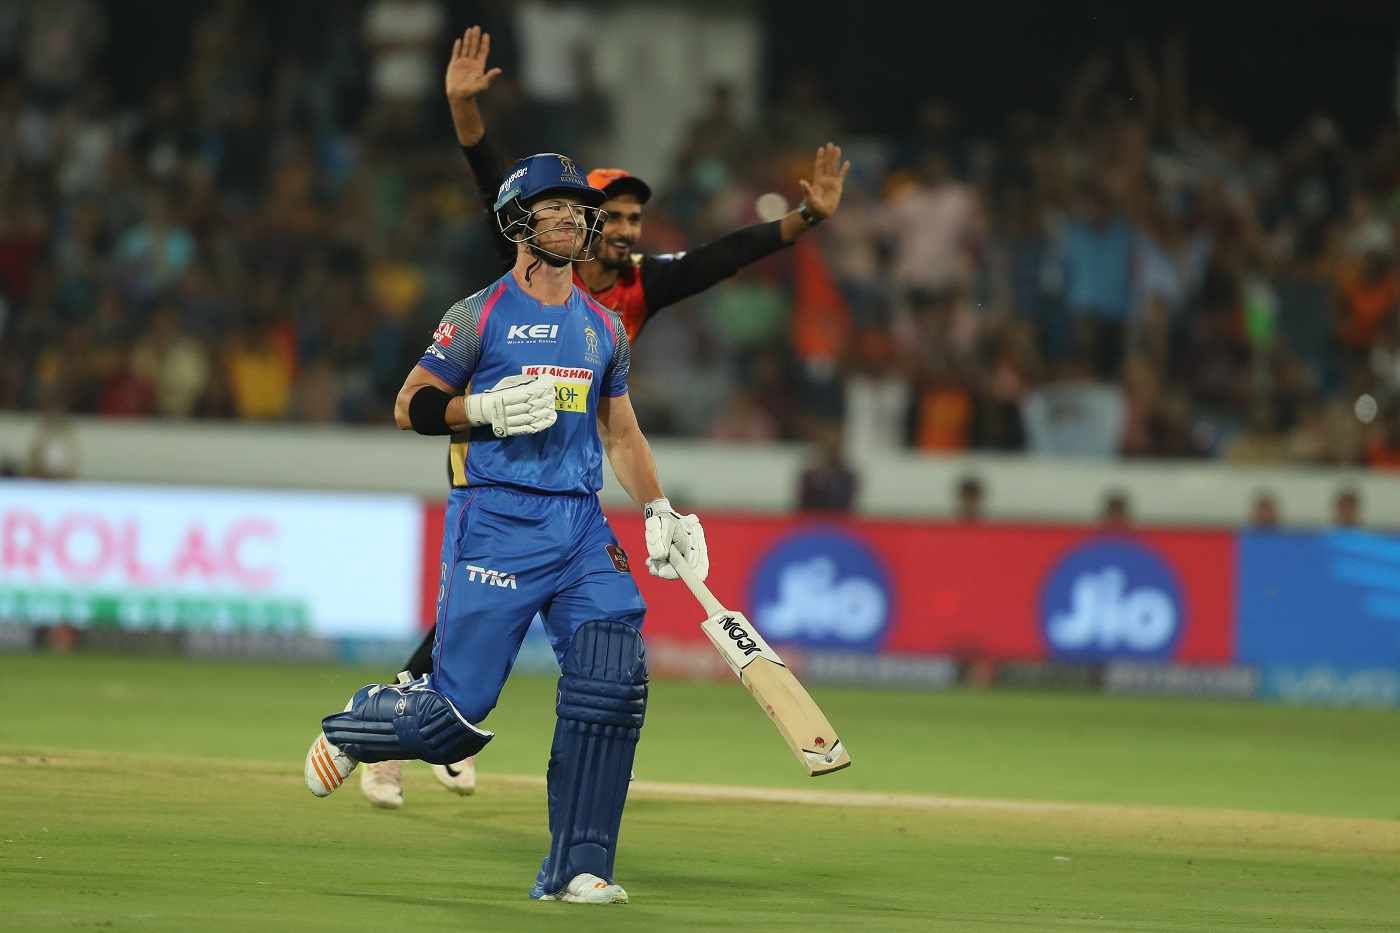 Easy win for Sunrisers, as Rajasthan falters!